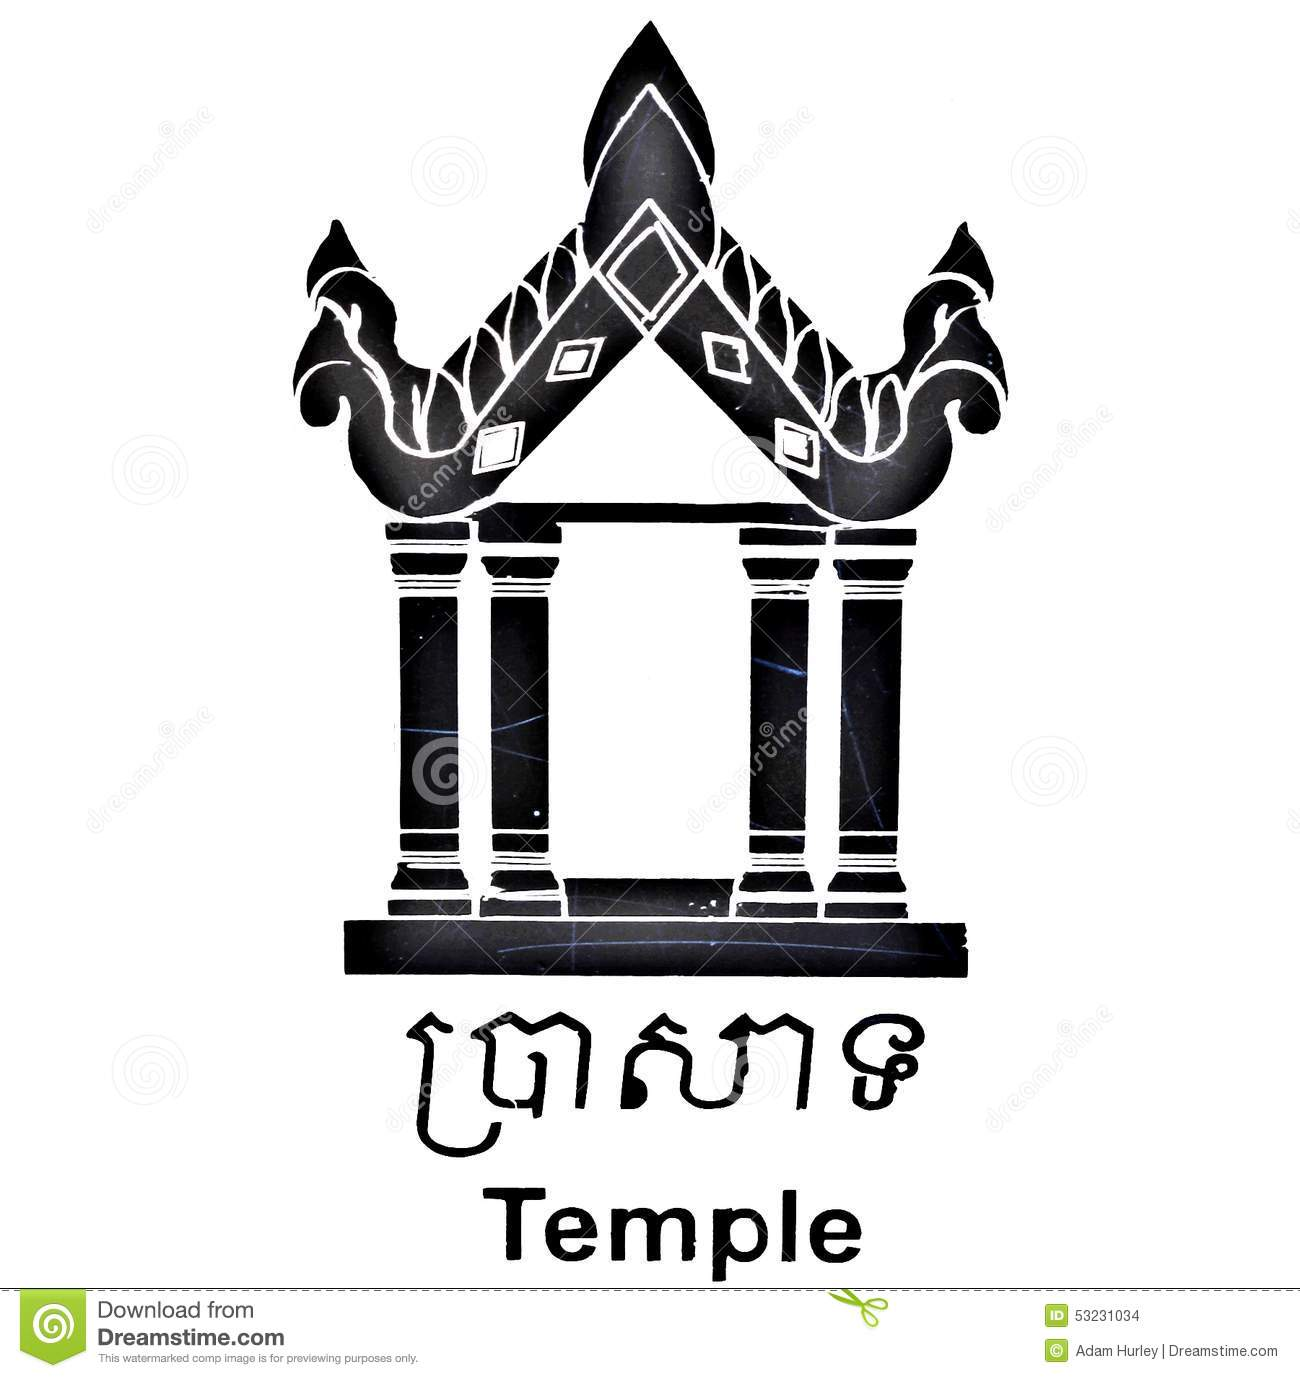 Temple sign in English and Khmer